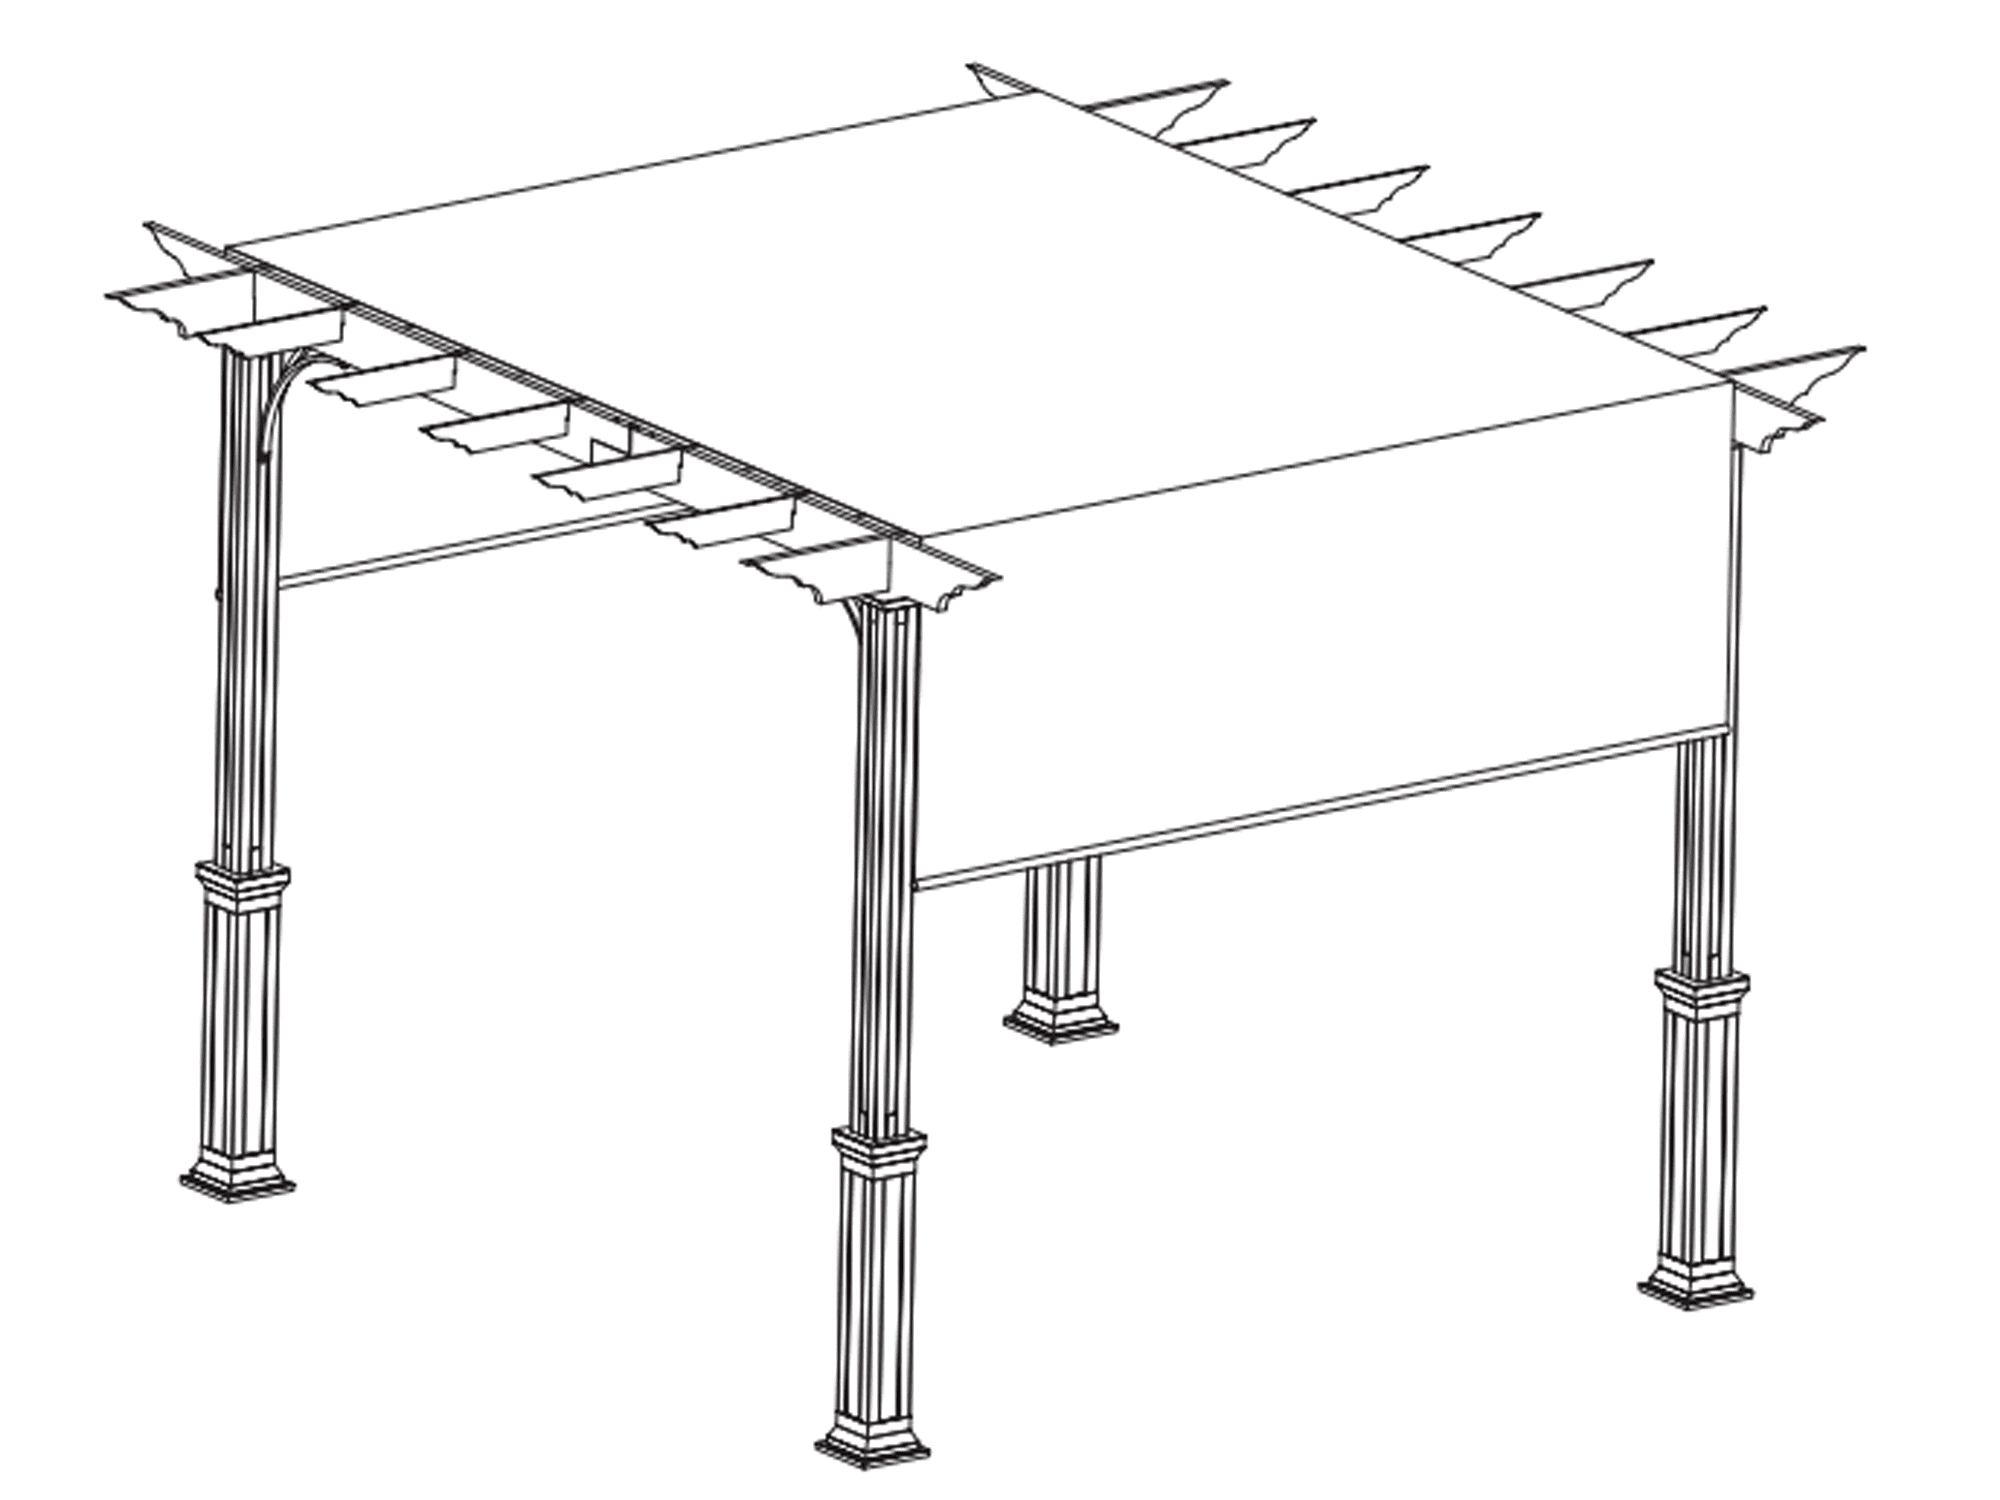 An illustration of a pergola with canopy